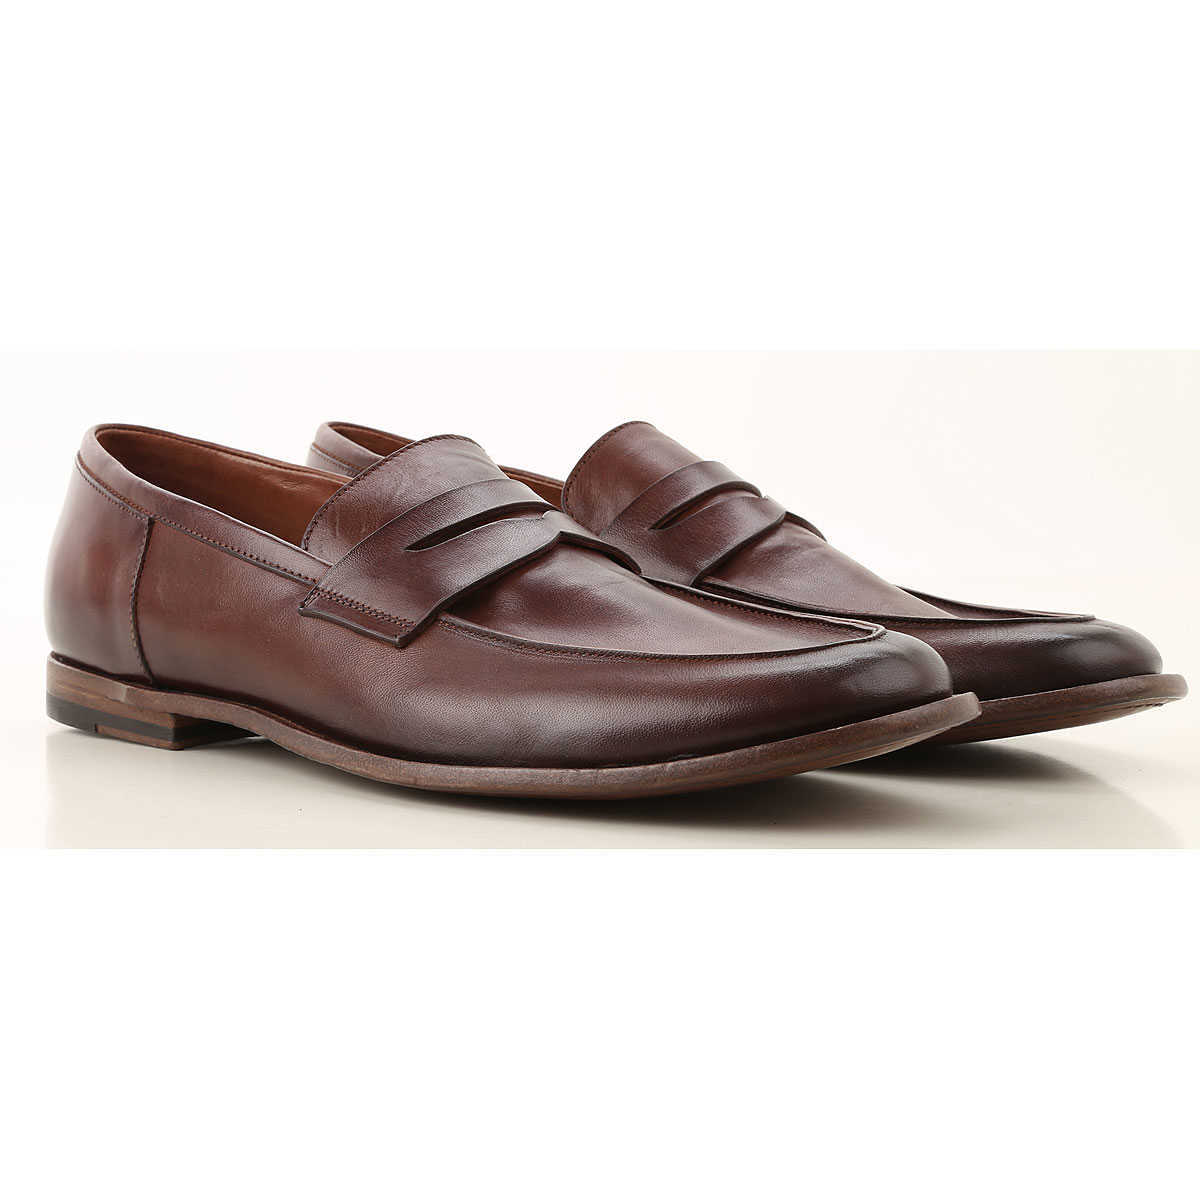 Pantanetti Loafers for Men Chocolate Brown Canada - GOOFASH - Mens LOAFERS